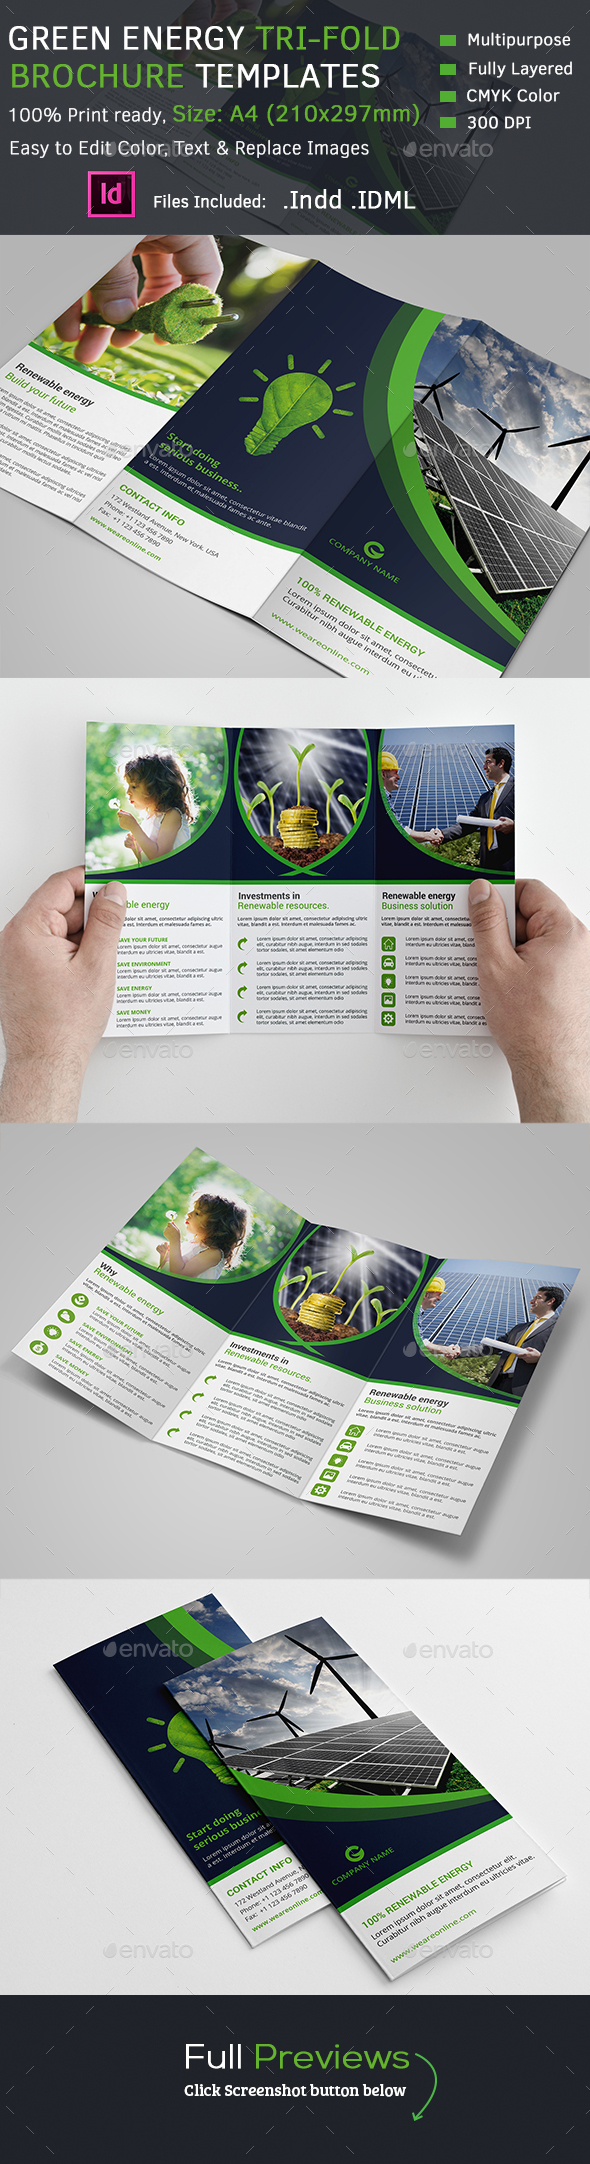 Green Energy Tri-Fold Brochure - Corporate Brochures